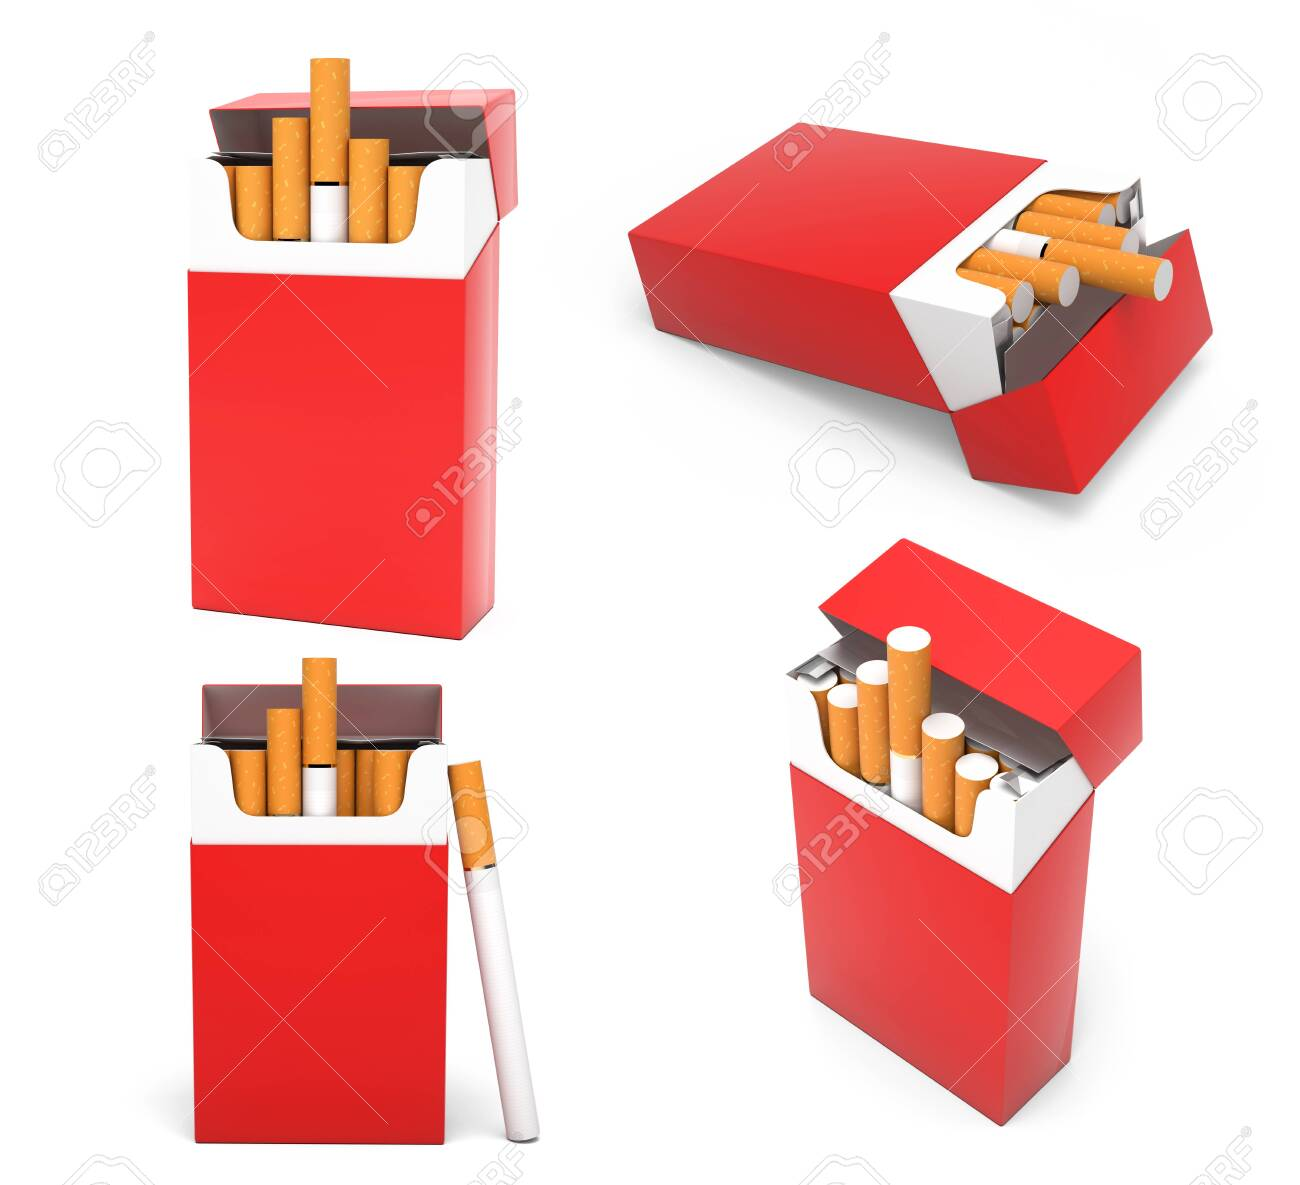 Red blank packs of cigarettes. With brown filter. 3d rendering illustration isolated on white background - 150524582